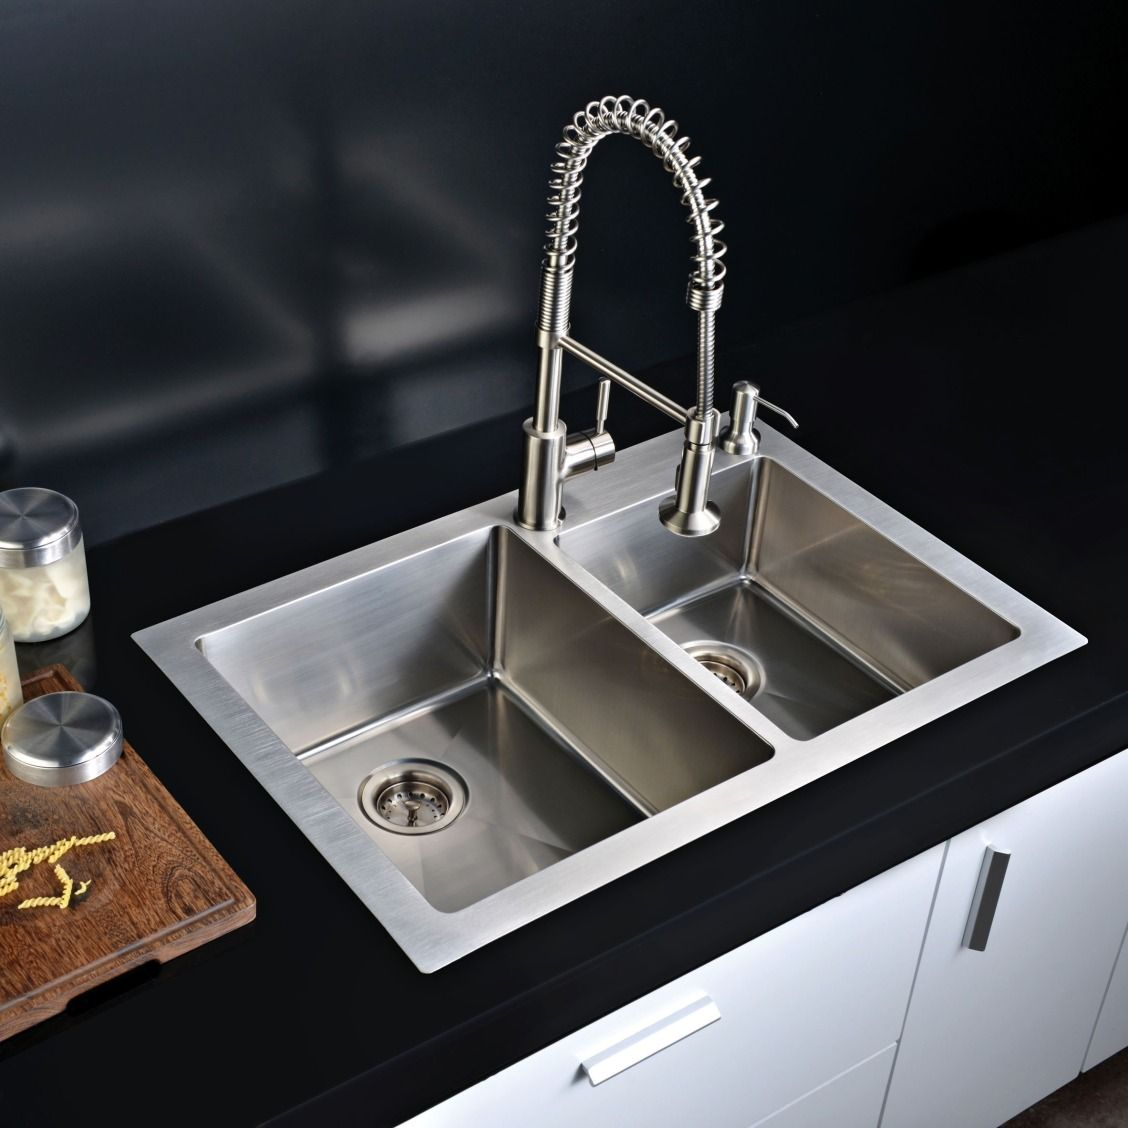 Combining Form And Function, This Dual Mount Kitchen Sink Is A True Beauty.